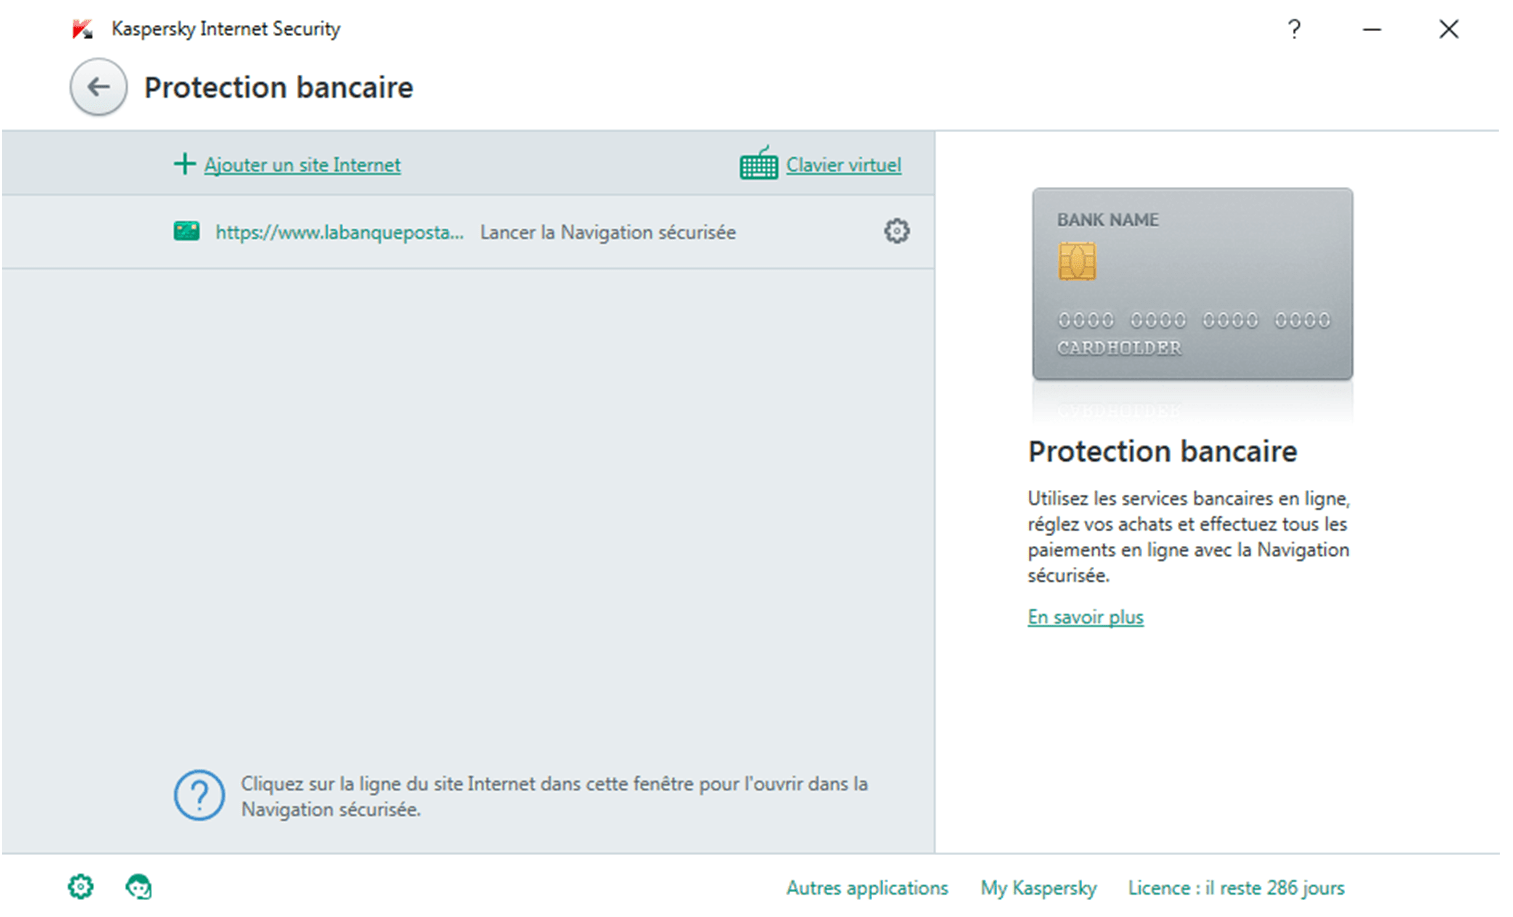 Kaspersky2016-Protection banquaire